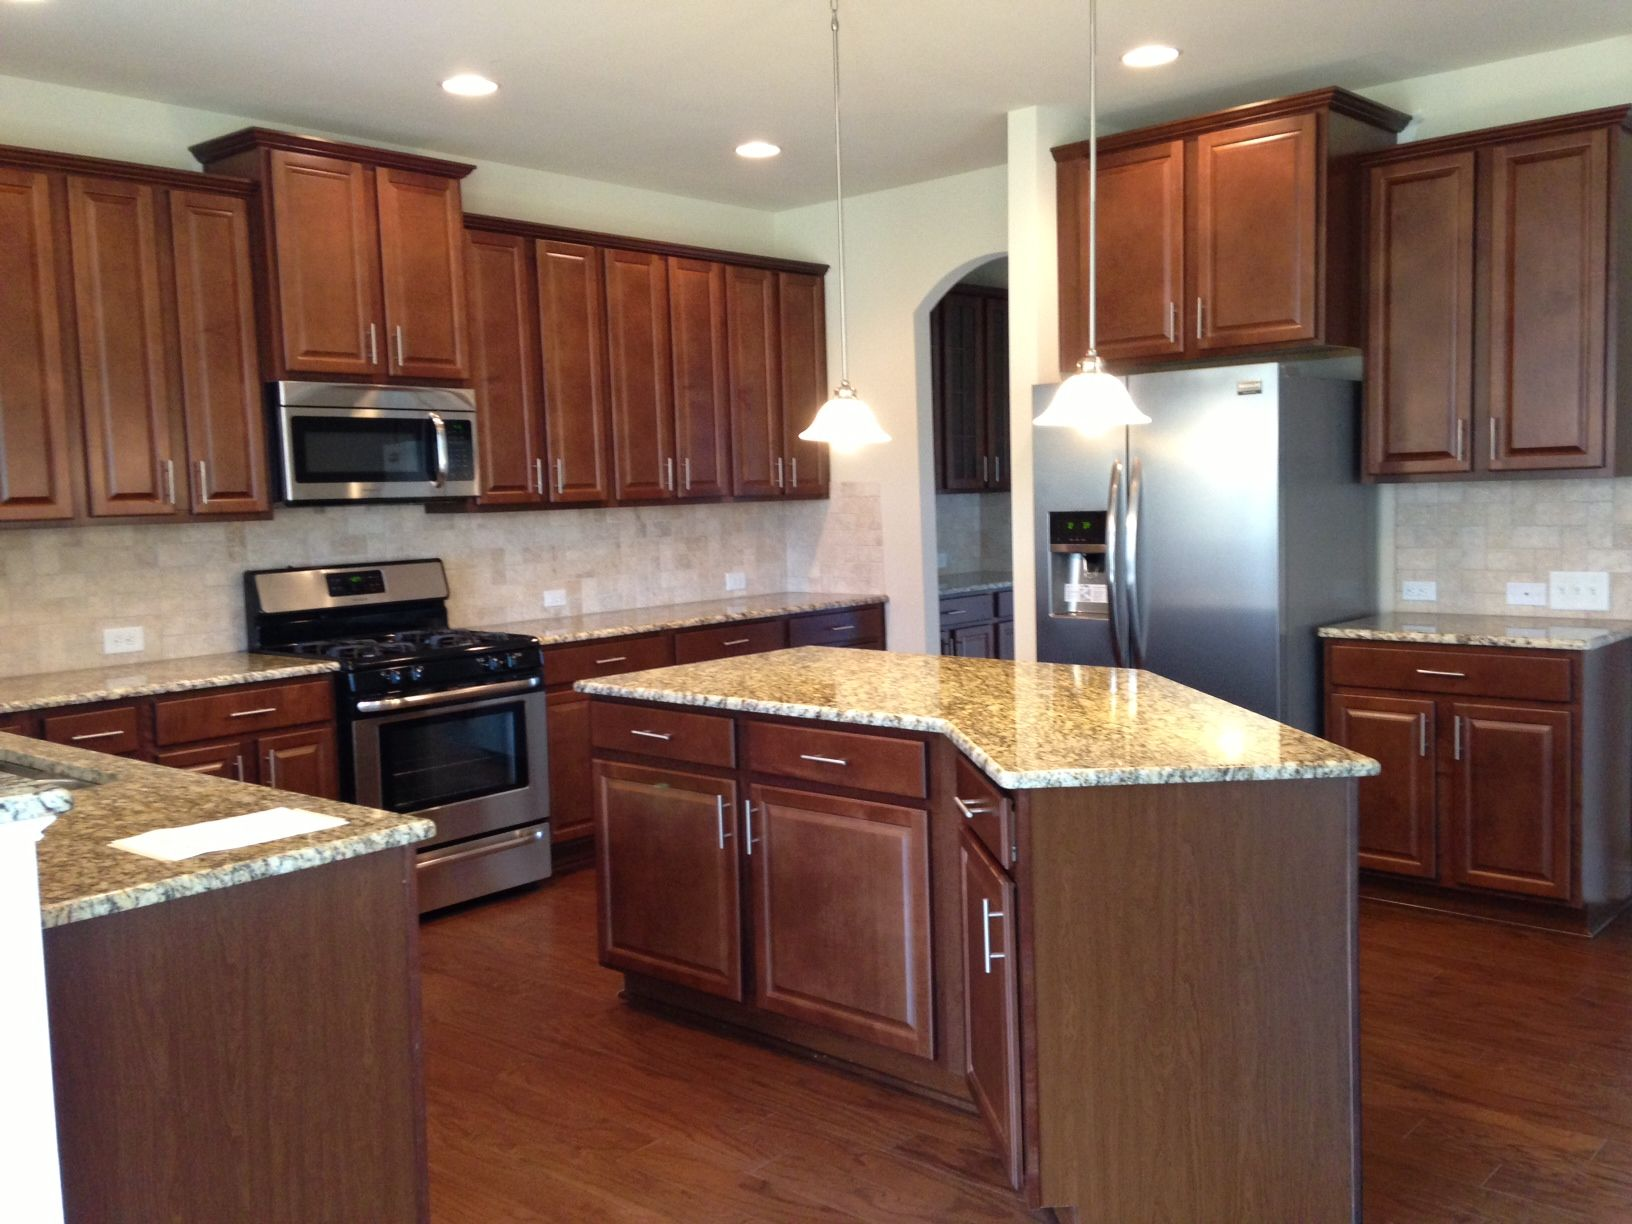 Wakefield kitchen timberlake andover maple nutmeg for Maple kitchen cabinets